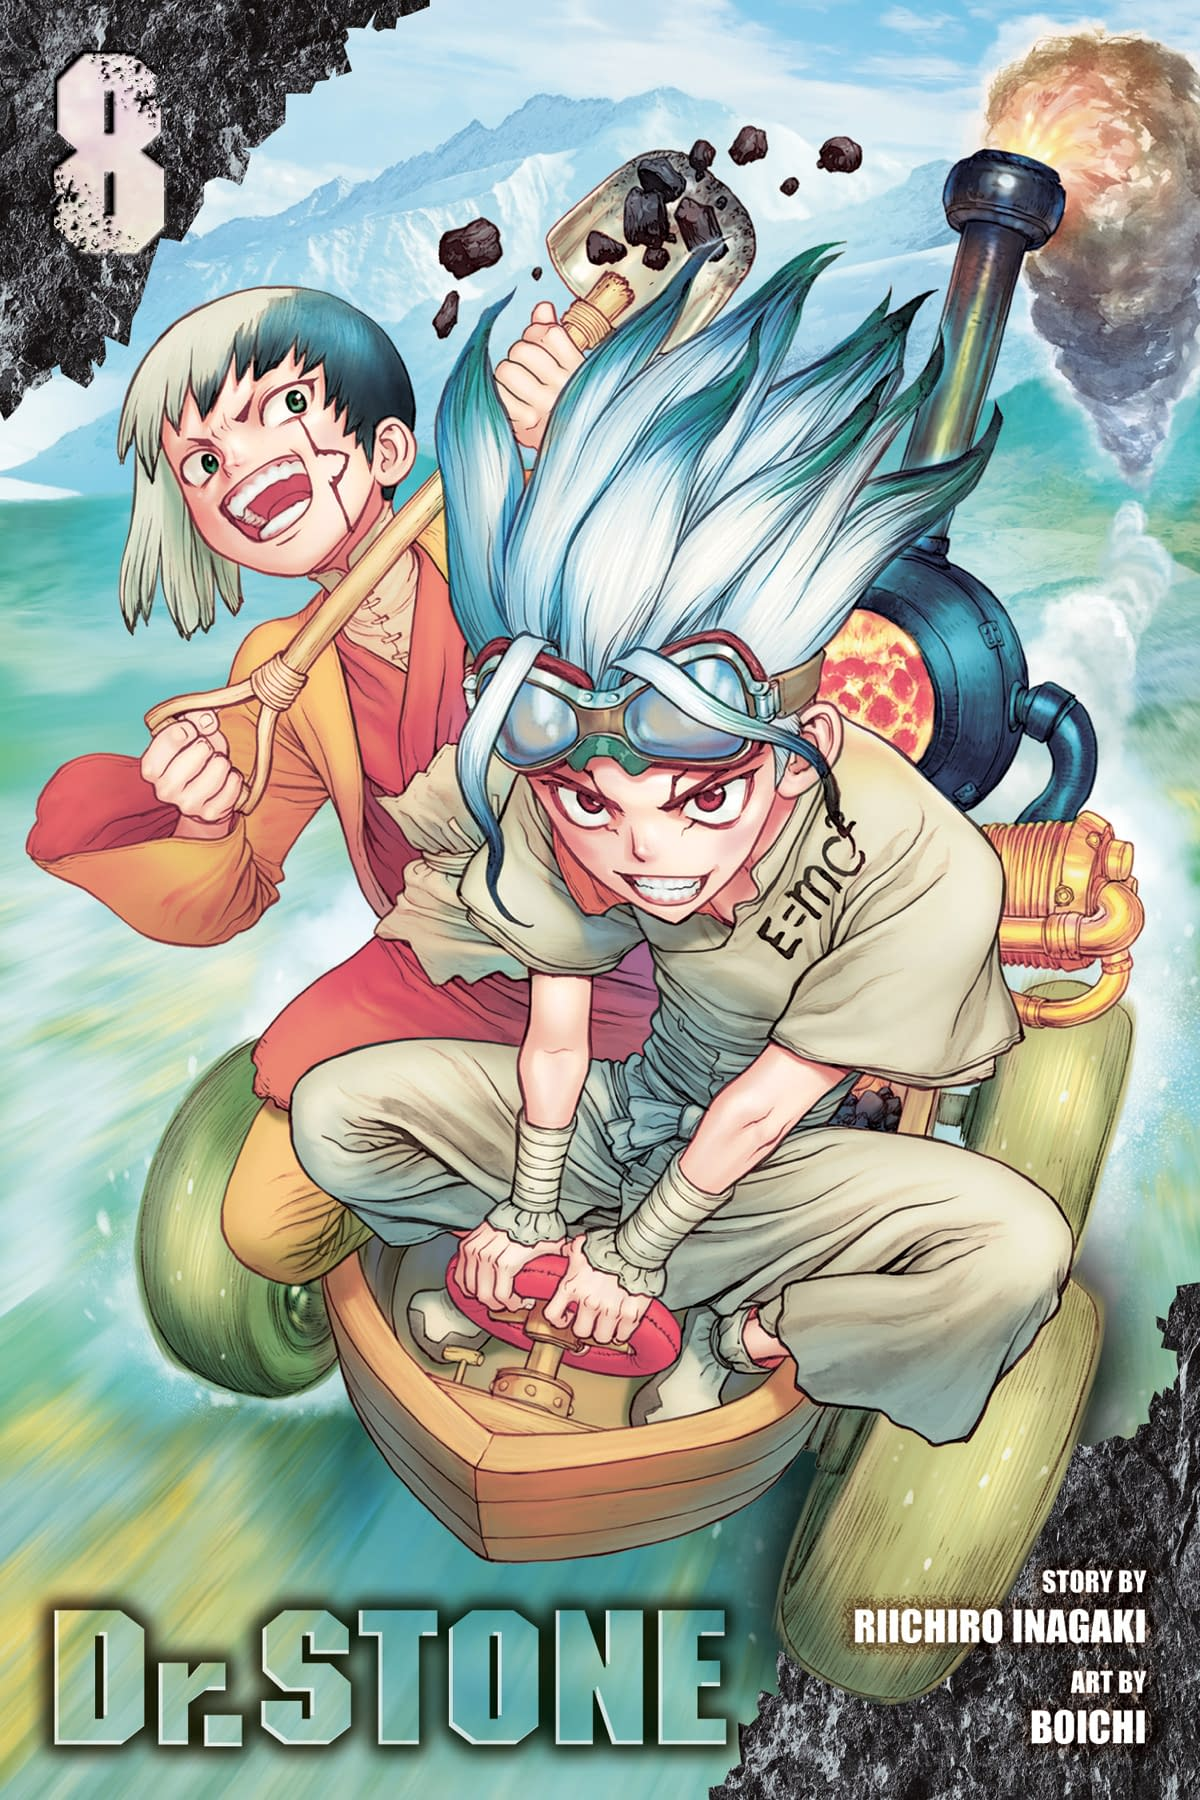 Viz Media Releases November 2019 Manga and Art Book Titles